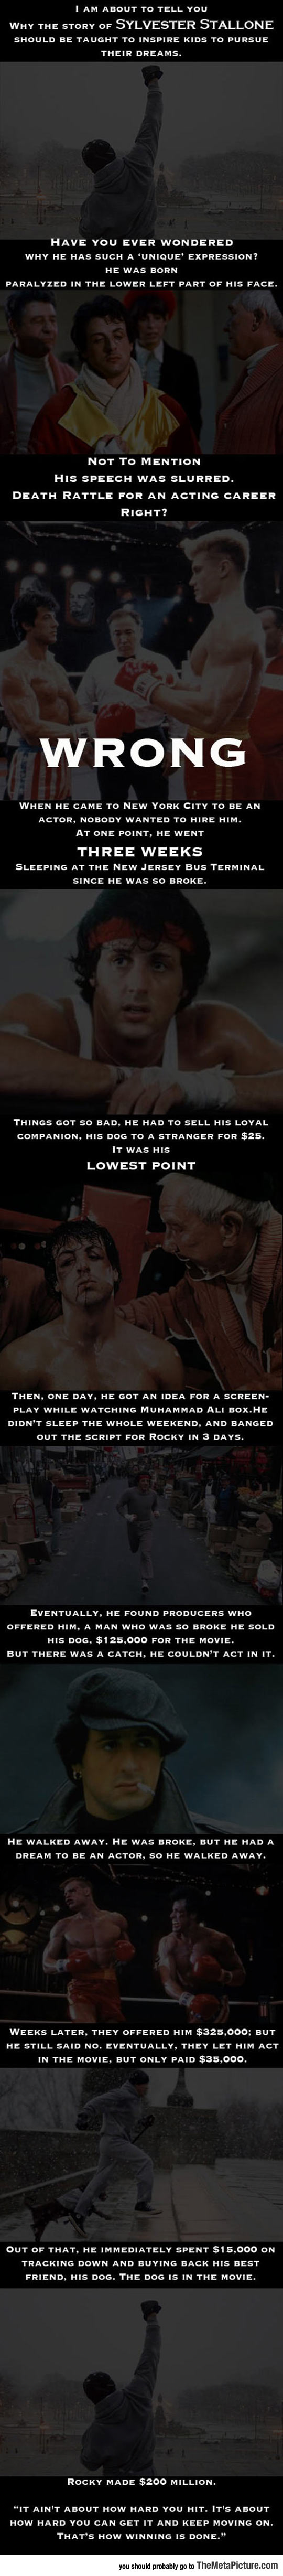 cool-Sylvester-Stallone-Rocky-movie